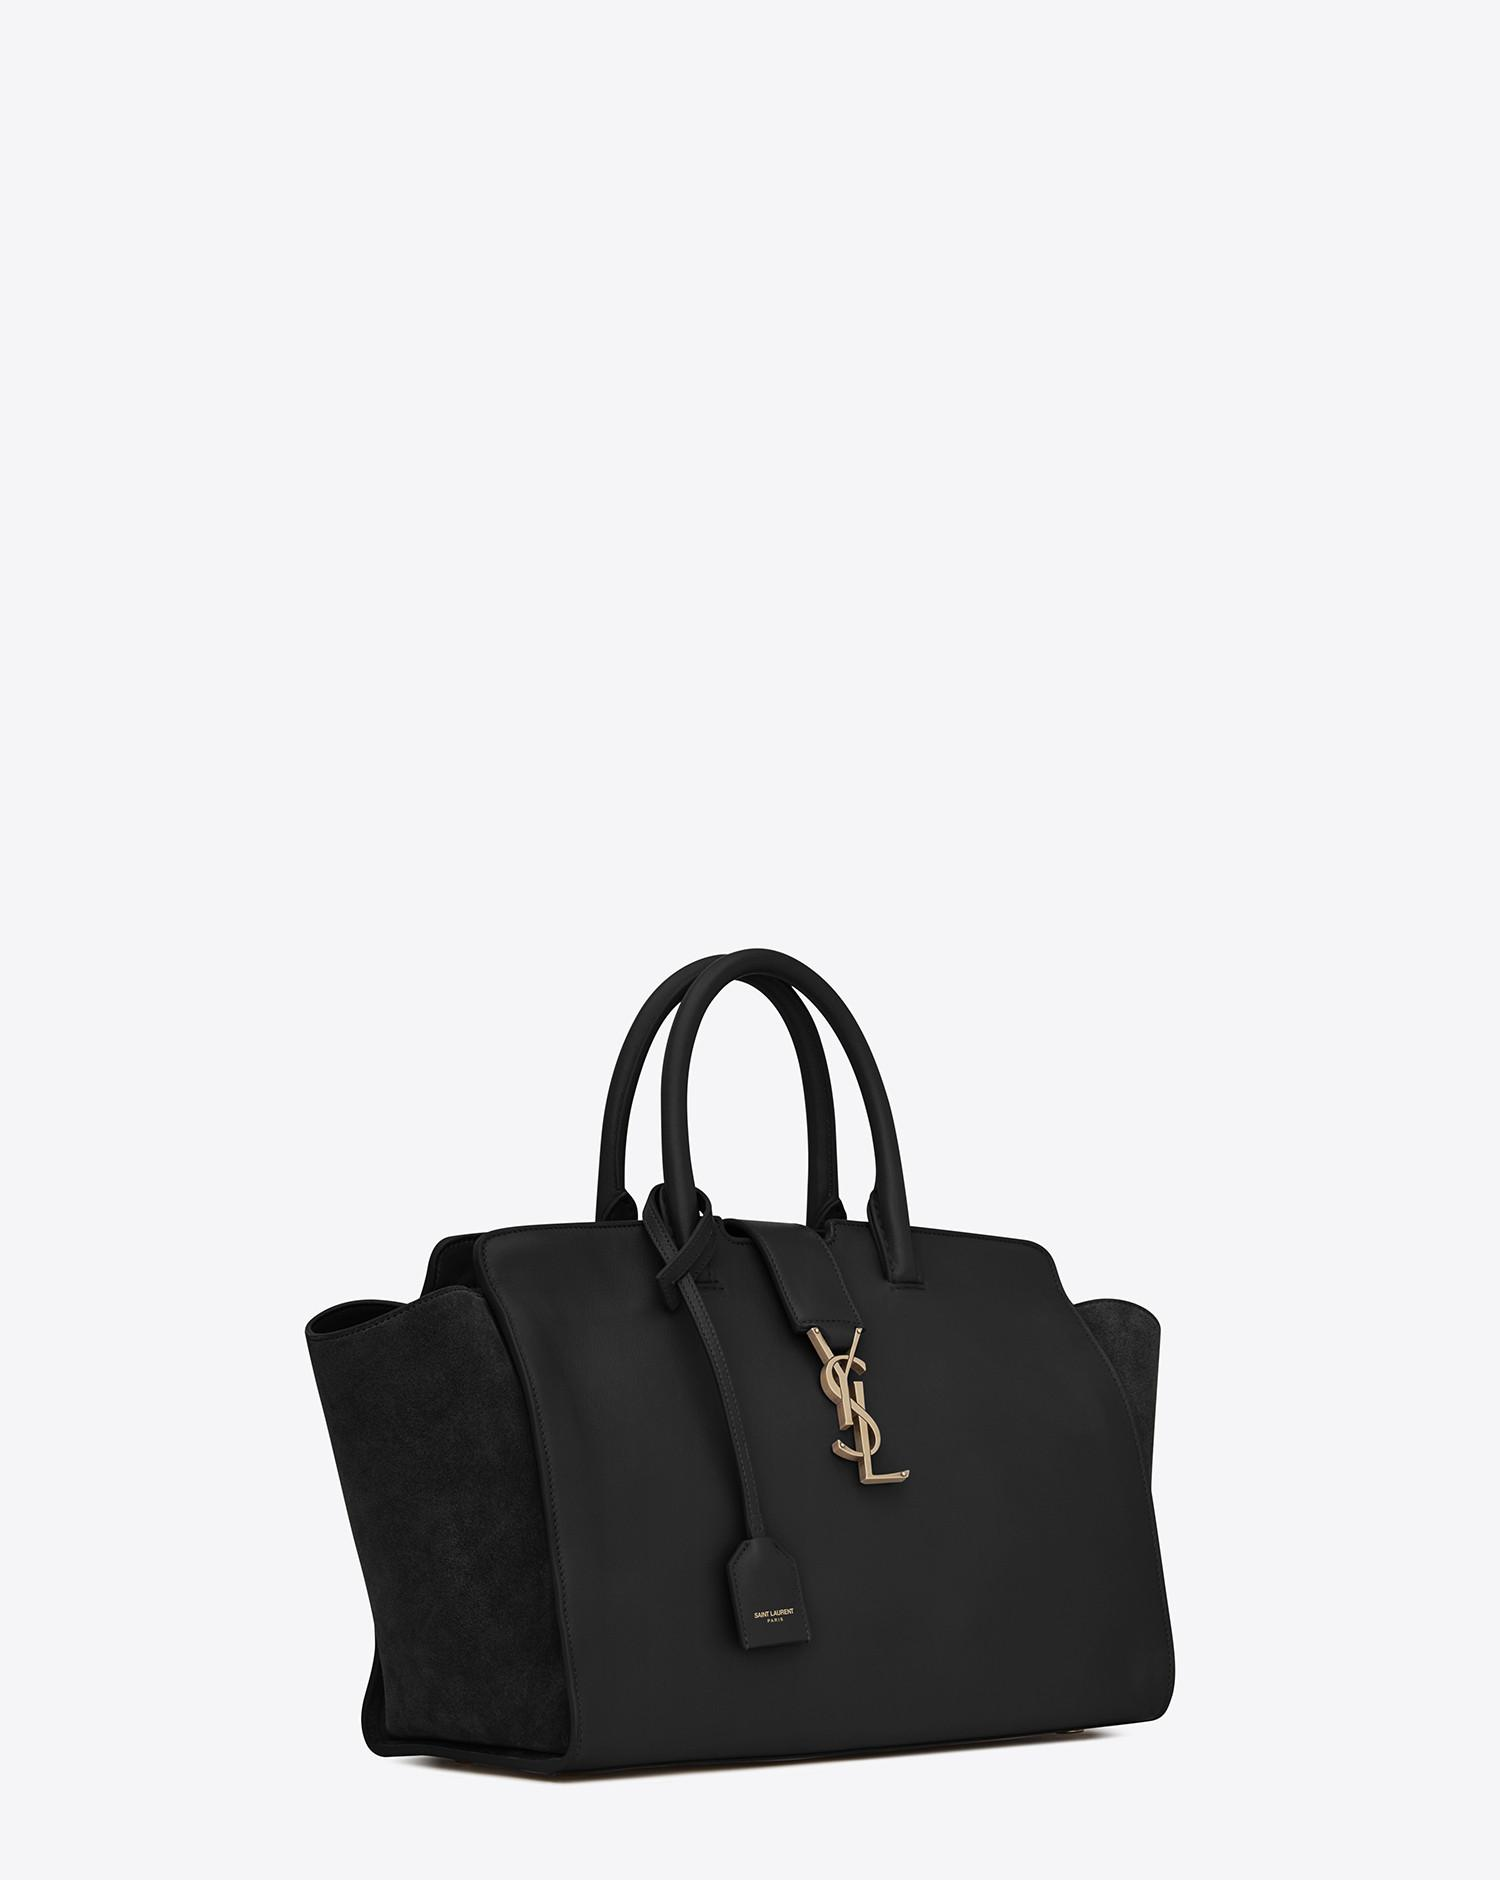 ad2904c43fee Saint Laurent. Women s Black Small Monogram Downtown Cabas Leather And  Suede Tote Bag